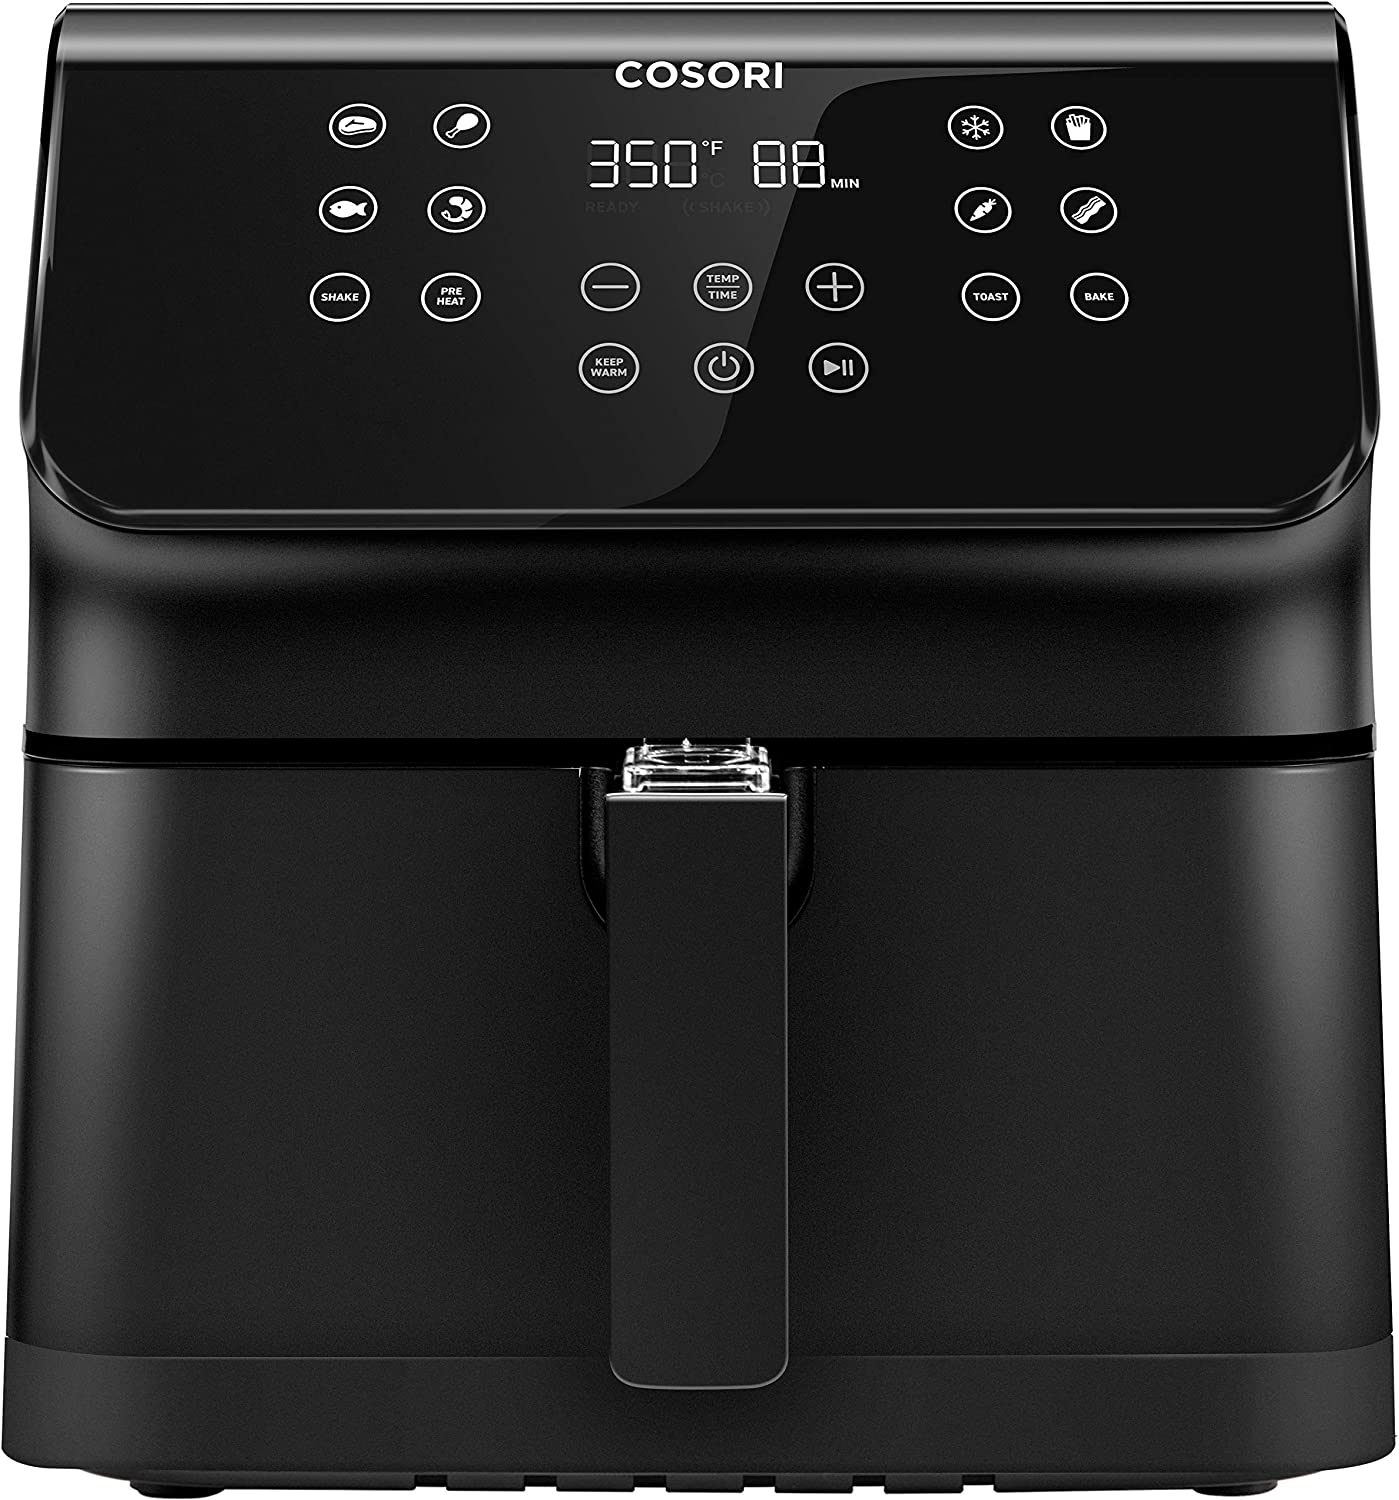 COSORI Air Fryer, Large XL 5.8 Quart 1700-Watt LED Digital Tilt One-Touchscreen with Preheat, Customizable 10 Presets & Shake Reminder, 5.8QT, Black